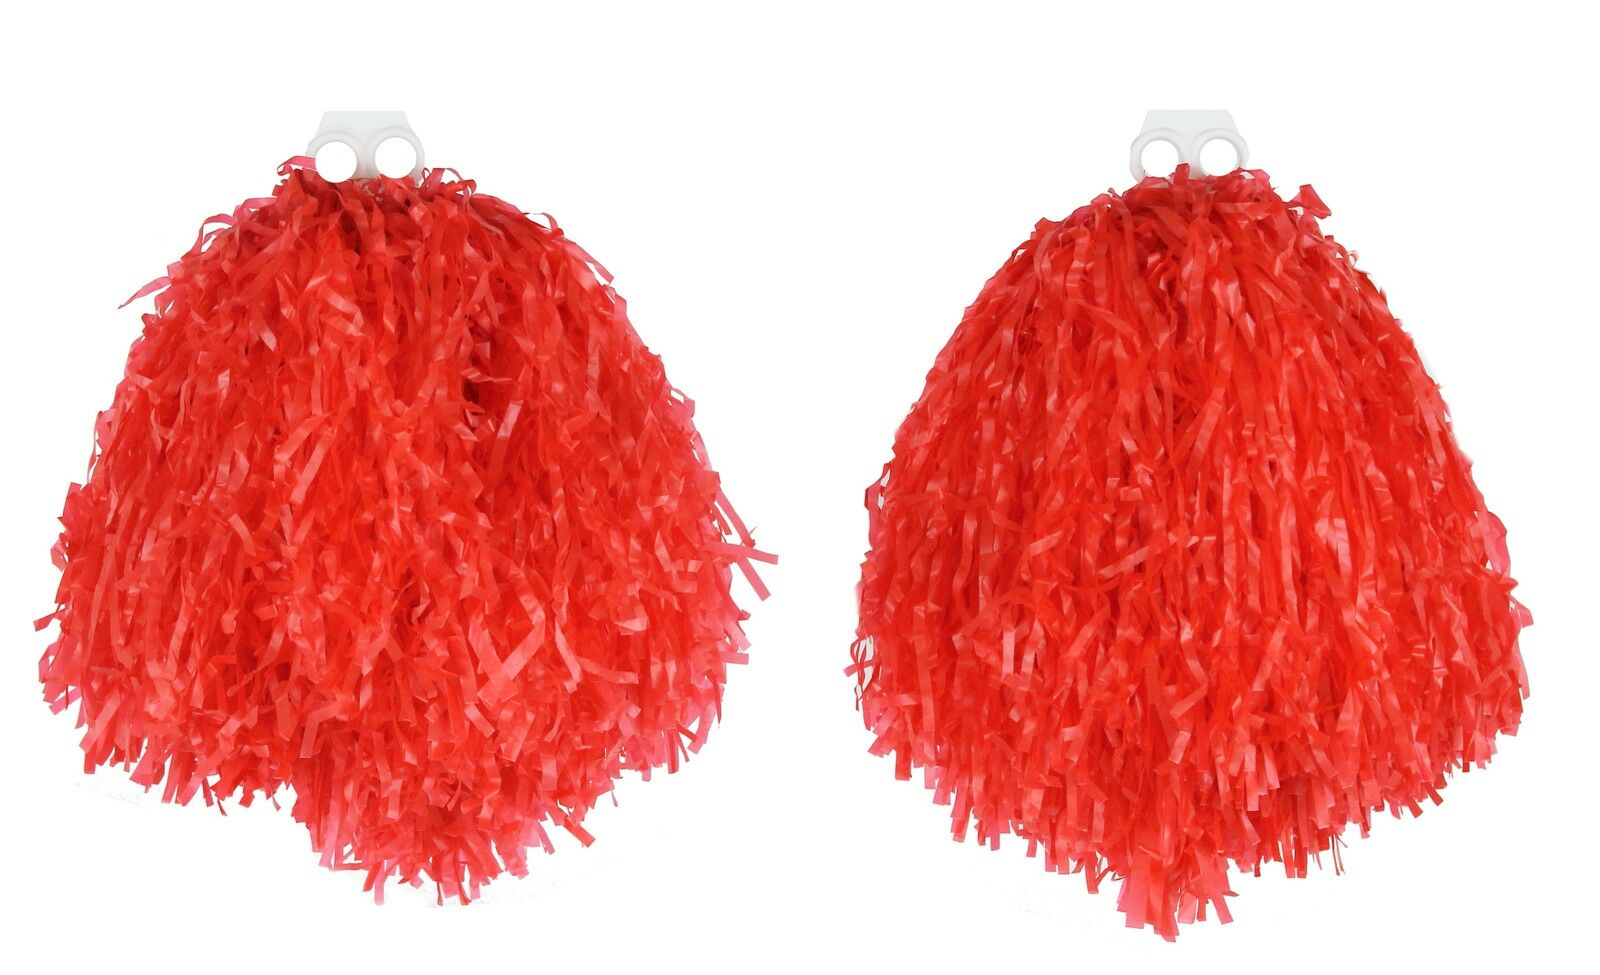 pom poms pair of large 10 red cheerleader shakers usa sports dance school ebay. Black Bedroom Furniture Sets. Home Design Ideas